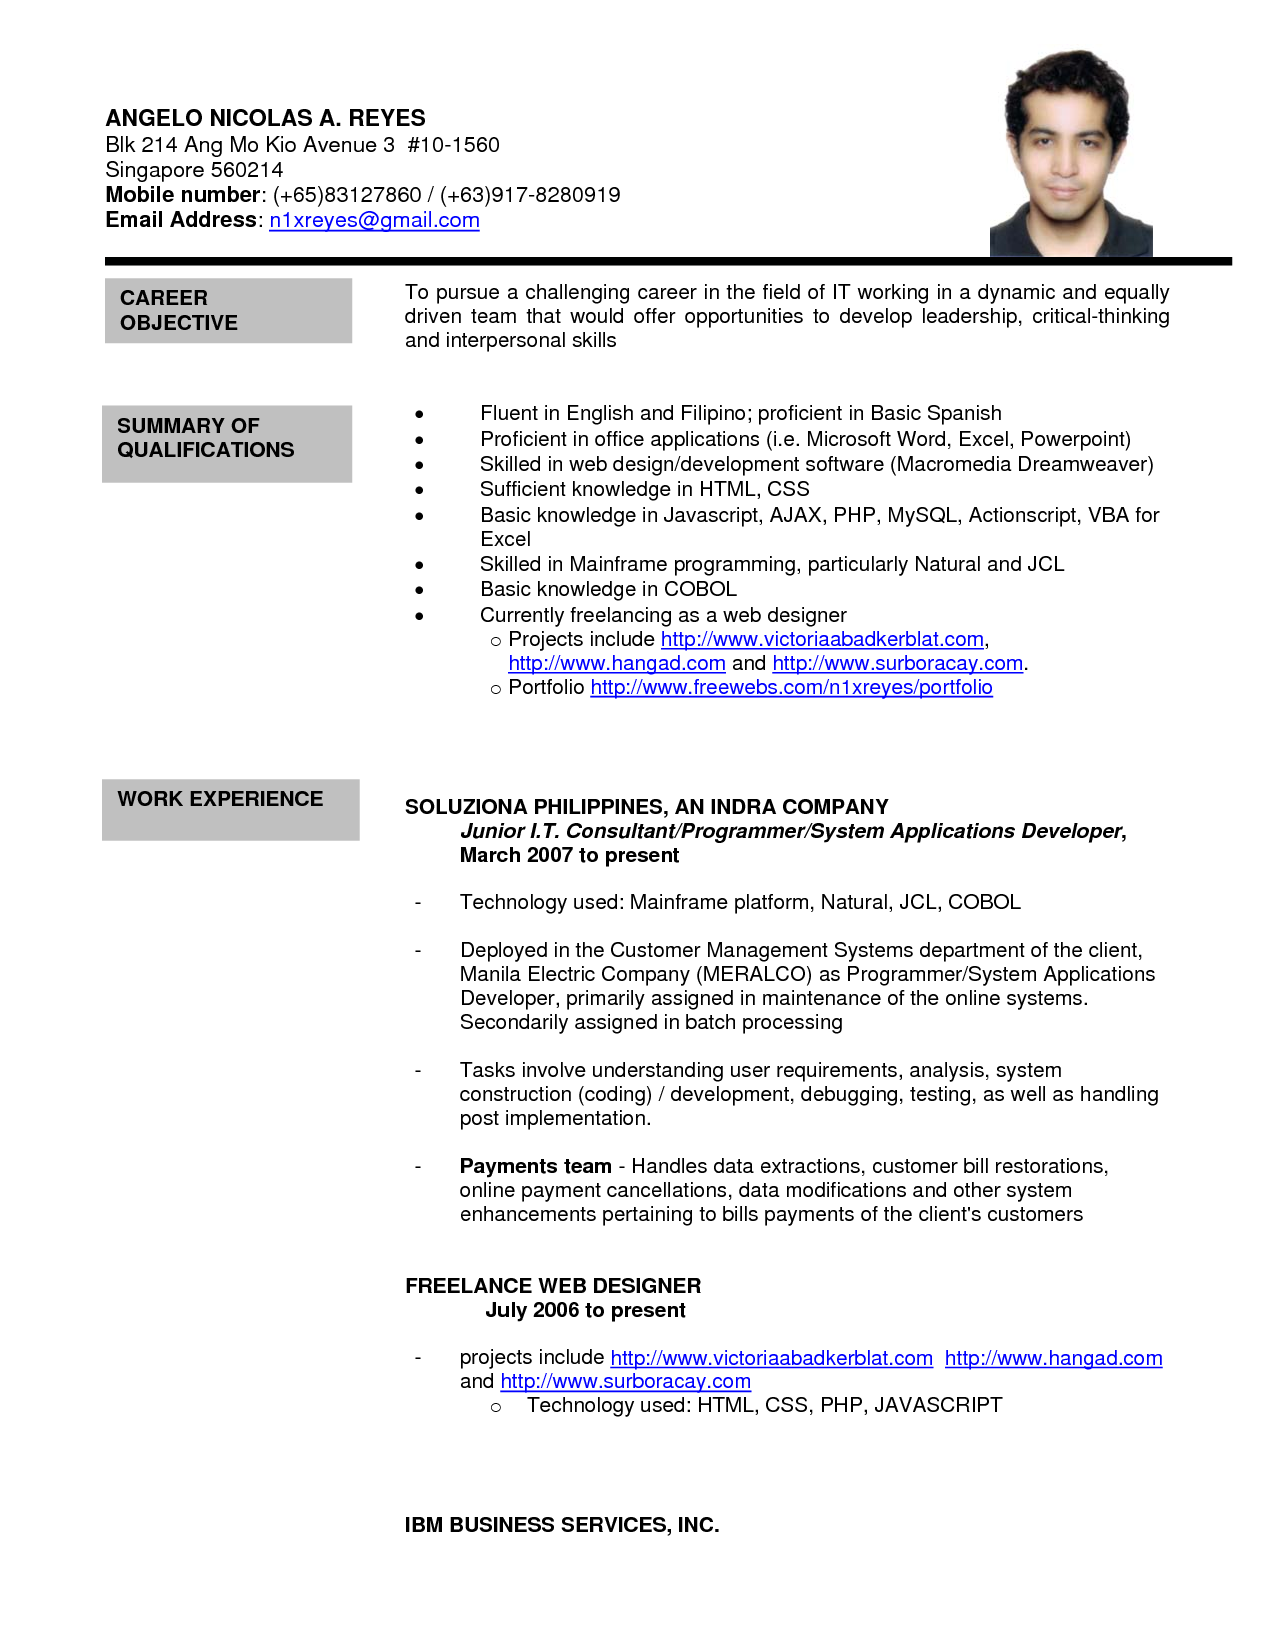 Resume Format With References